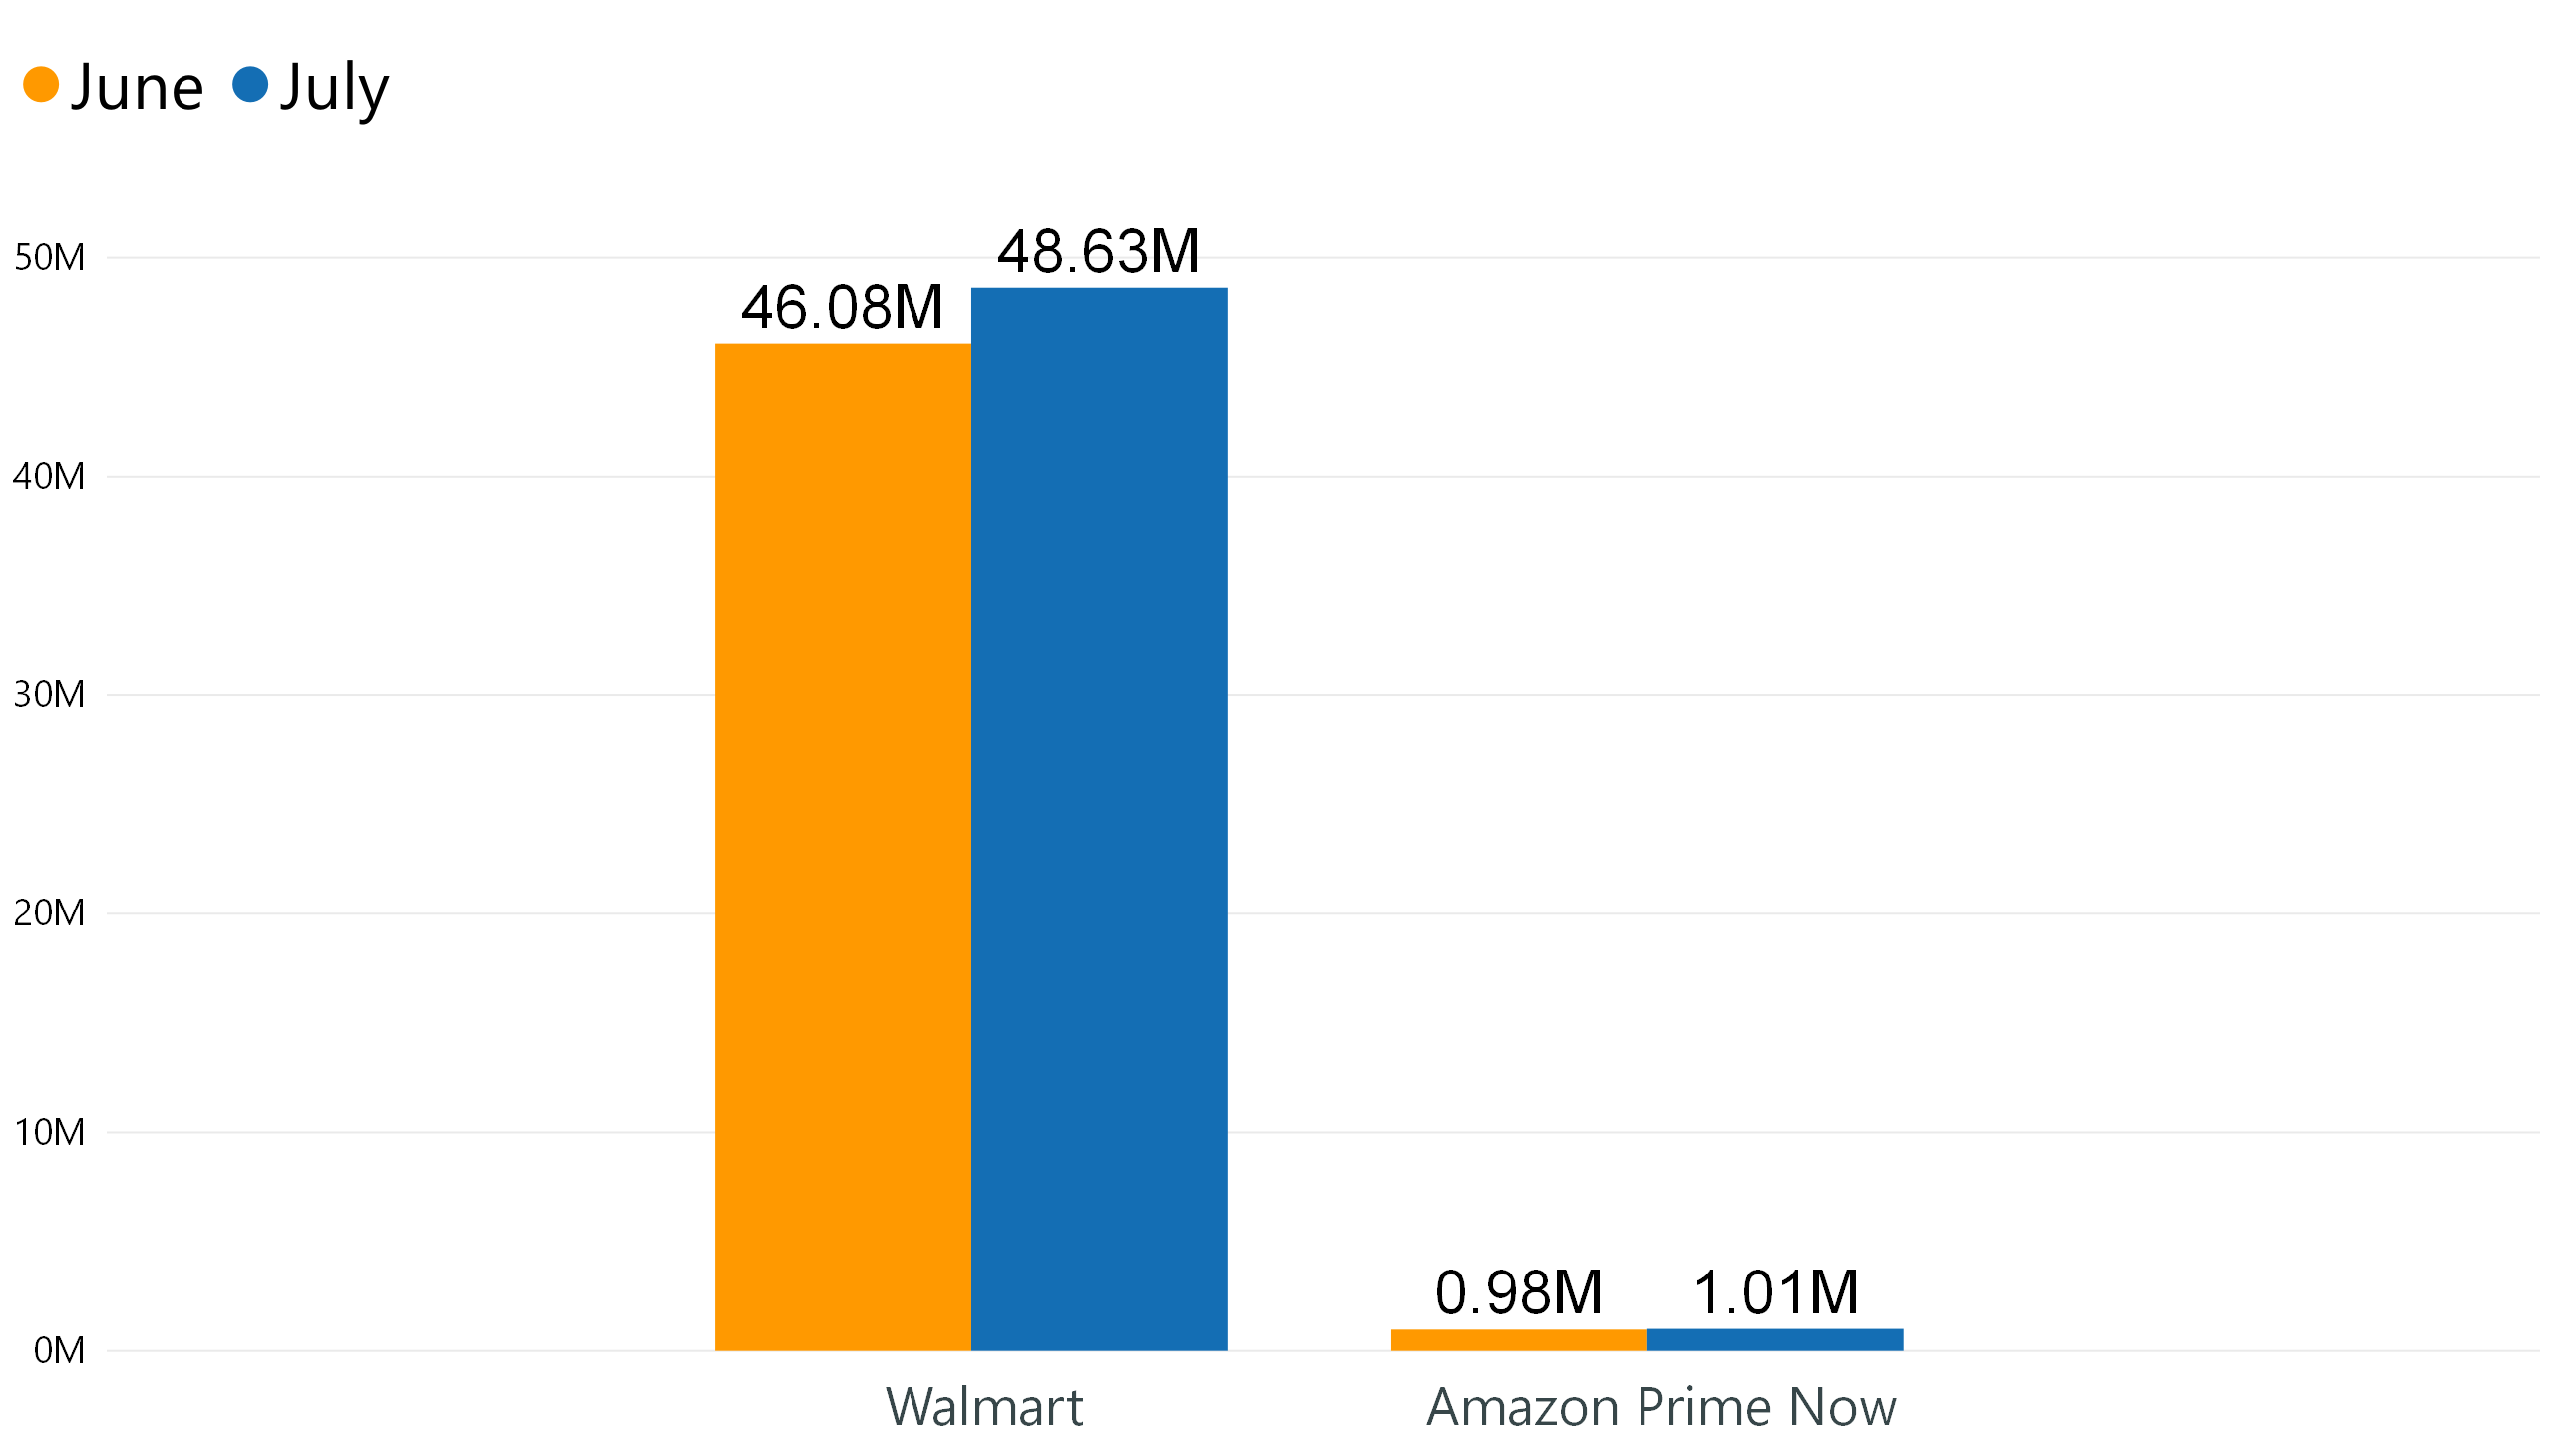 amazon prime now vs walmart grocery how many products do they sell